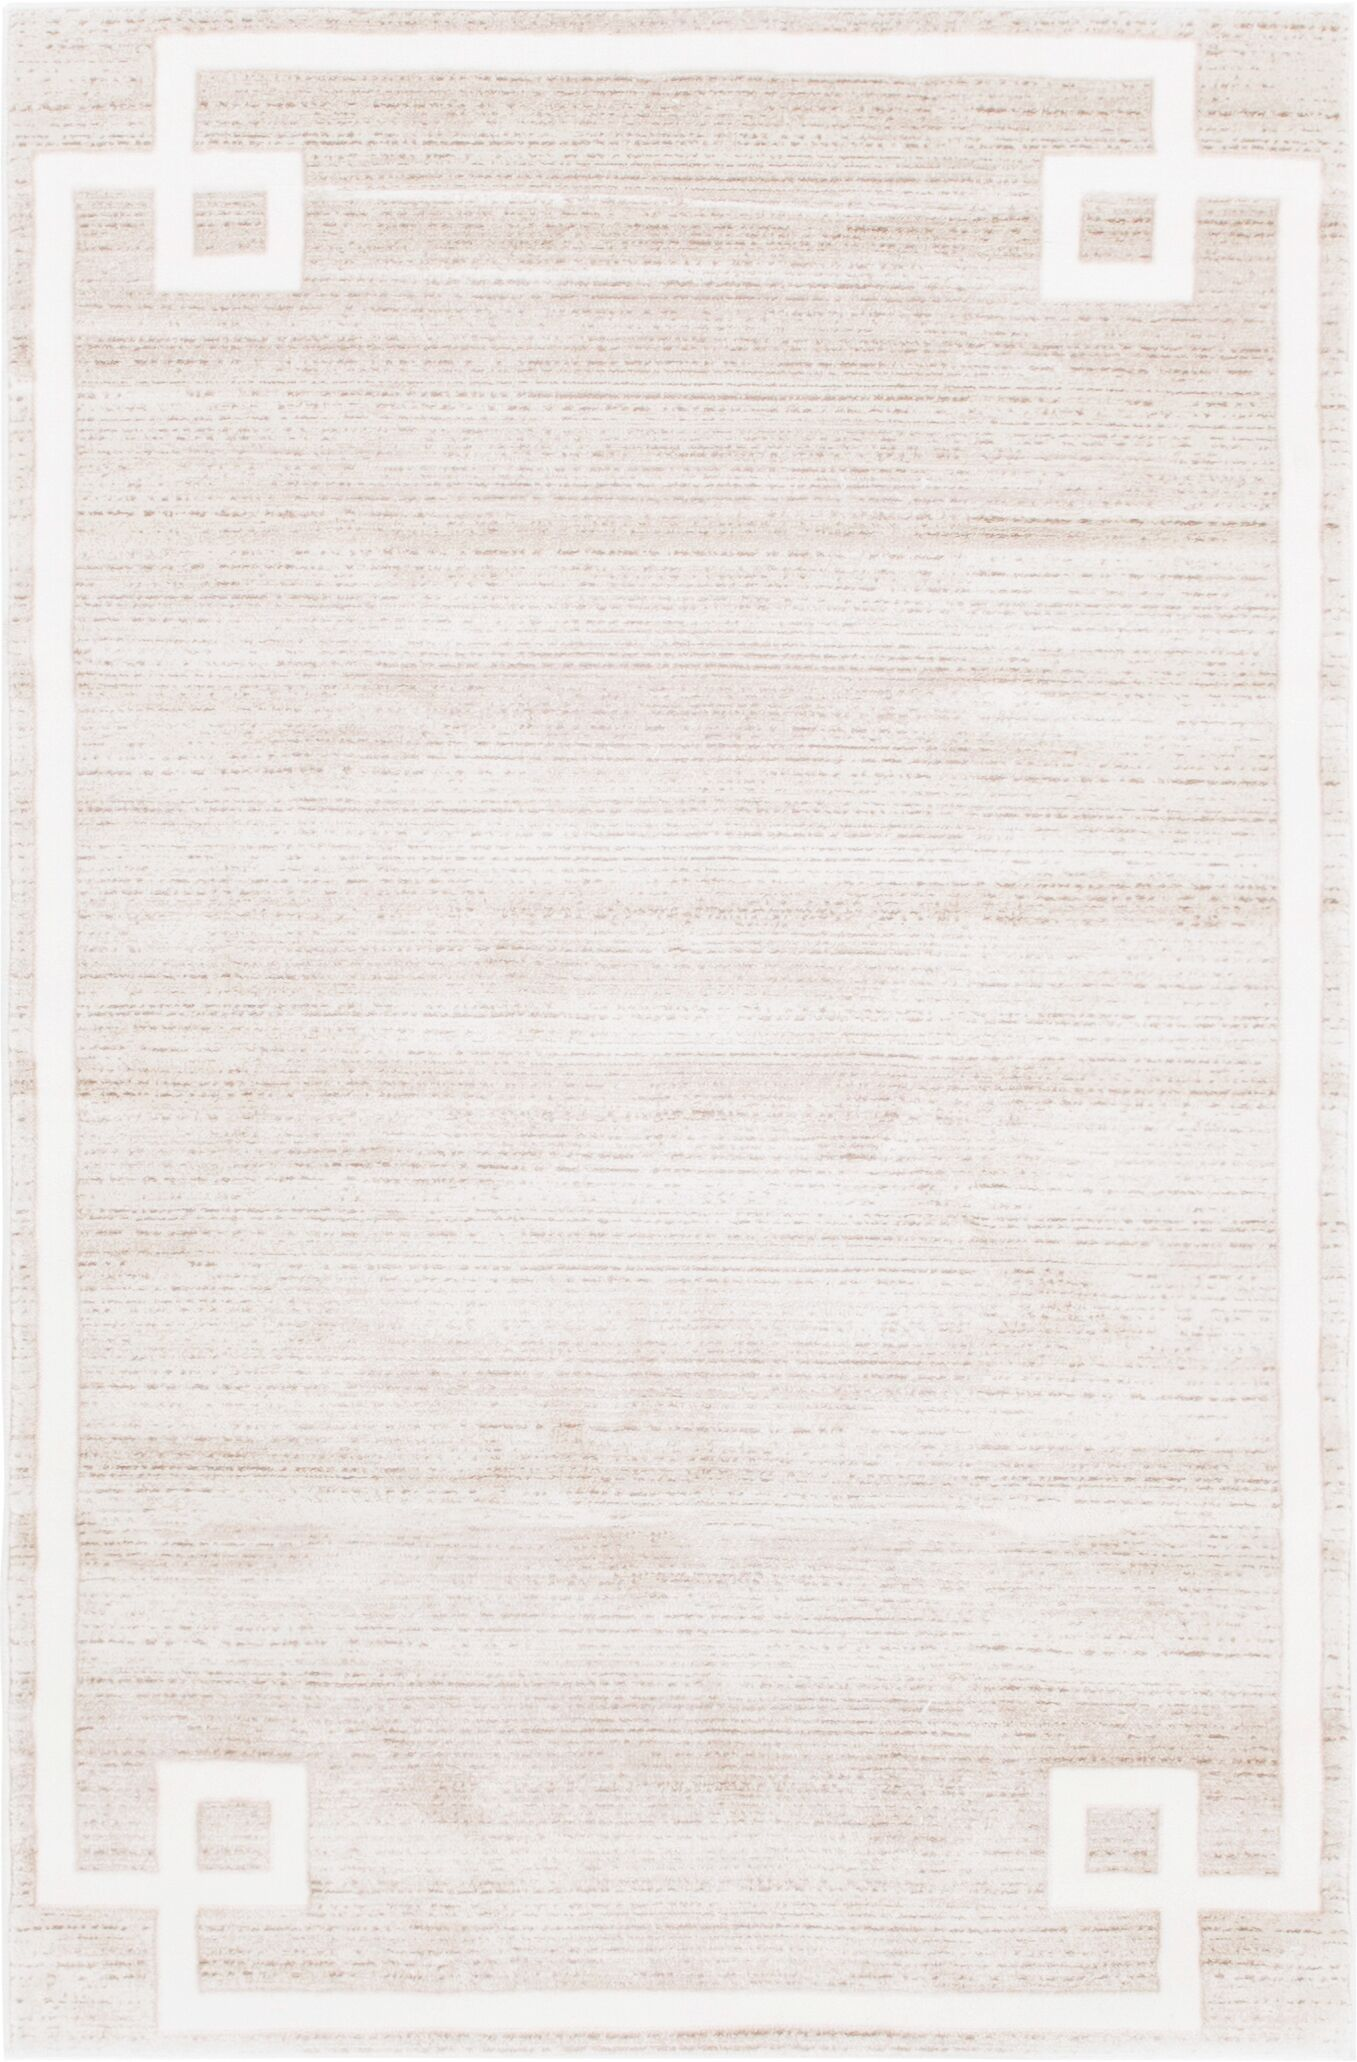 Uptown Hill Beige Area Rug Rug Size: Rectangle 4' x 6'